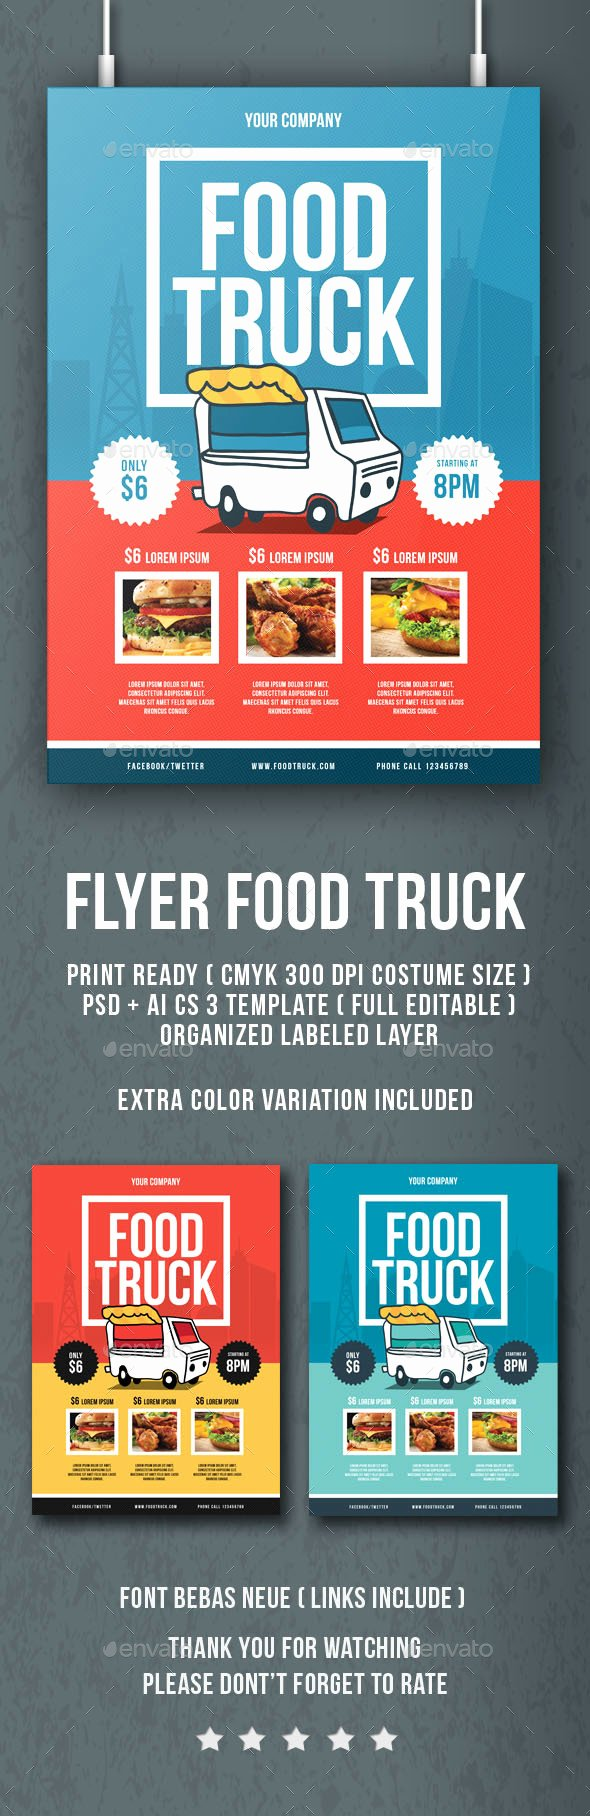 Food Truck Flyer by Lilynthesweetpea